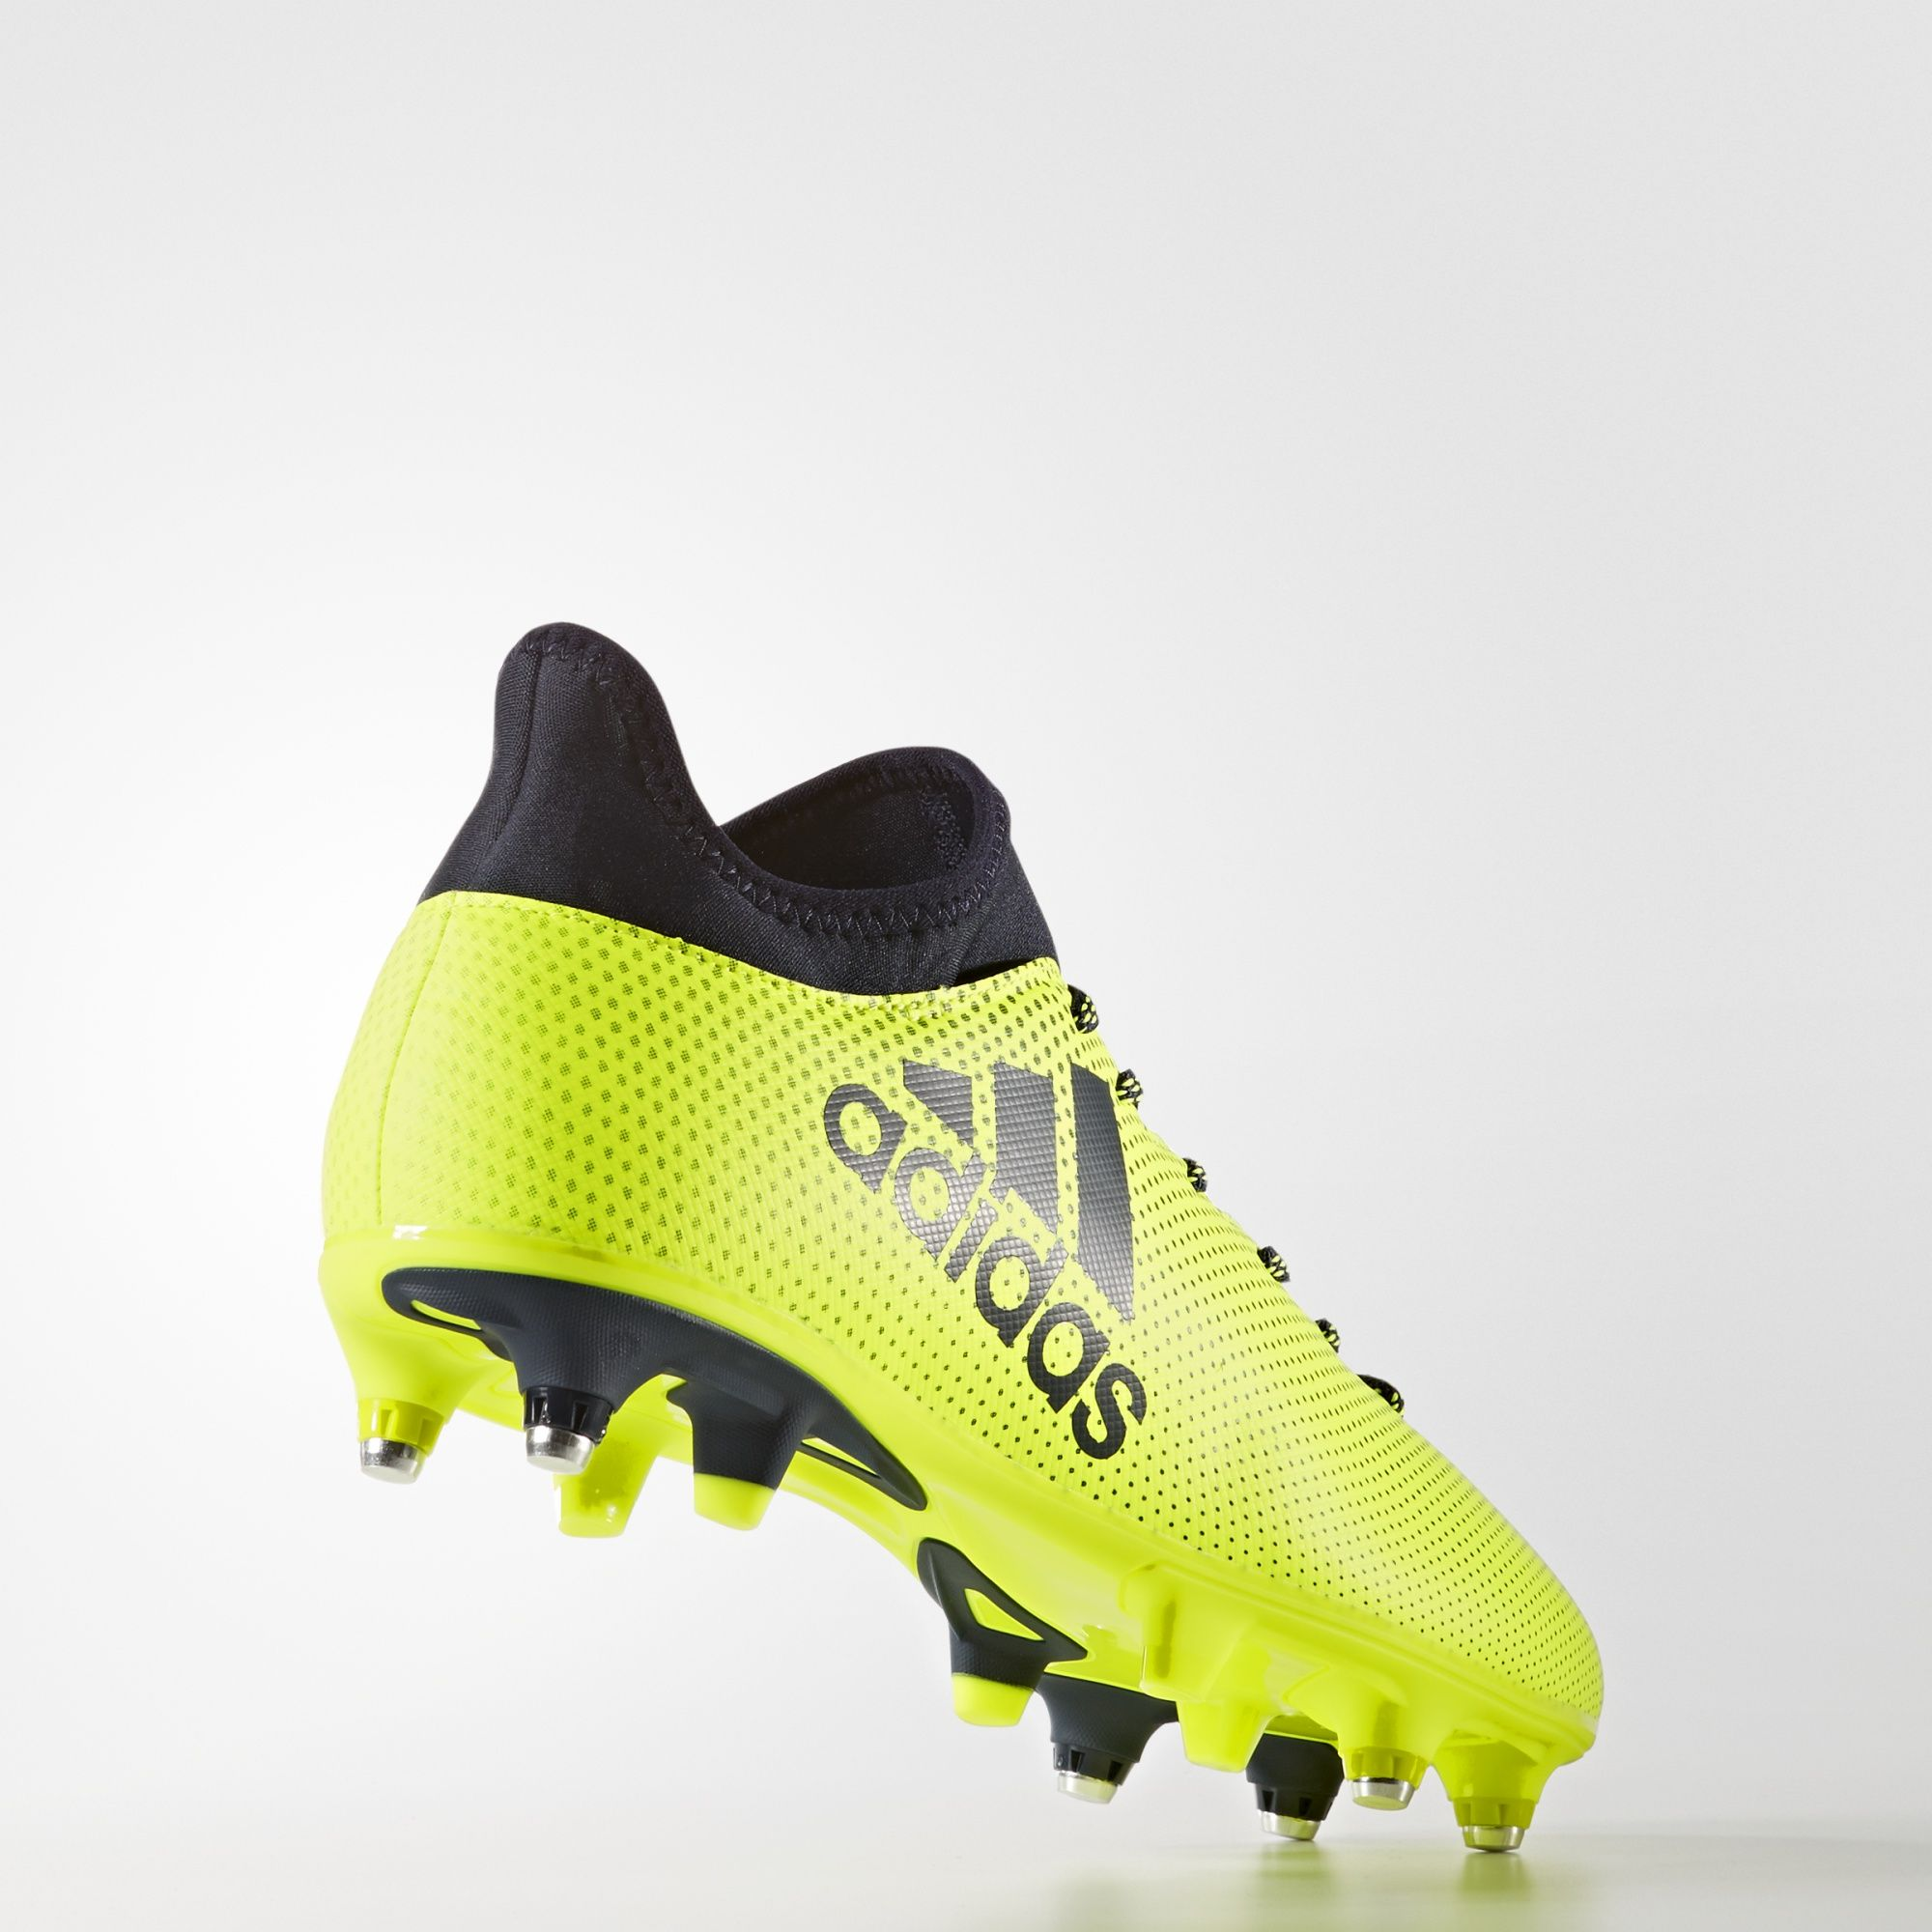 6c1b2e5e460 Adidas X 17.3 Soft Ground Boots